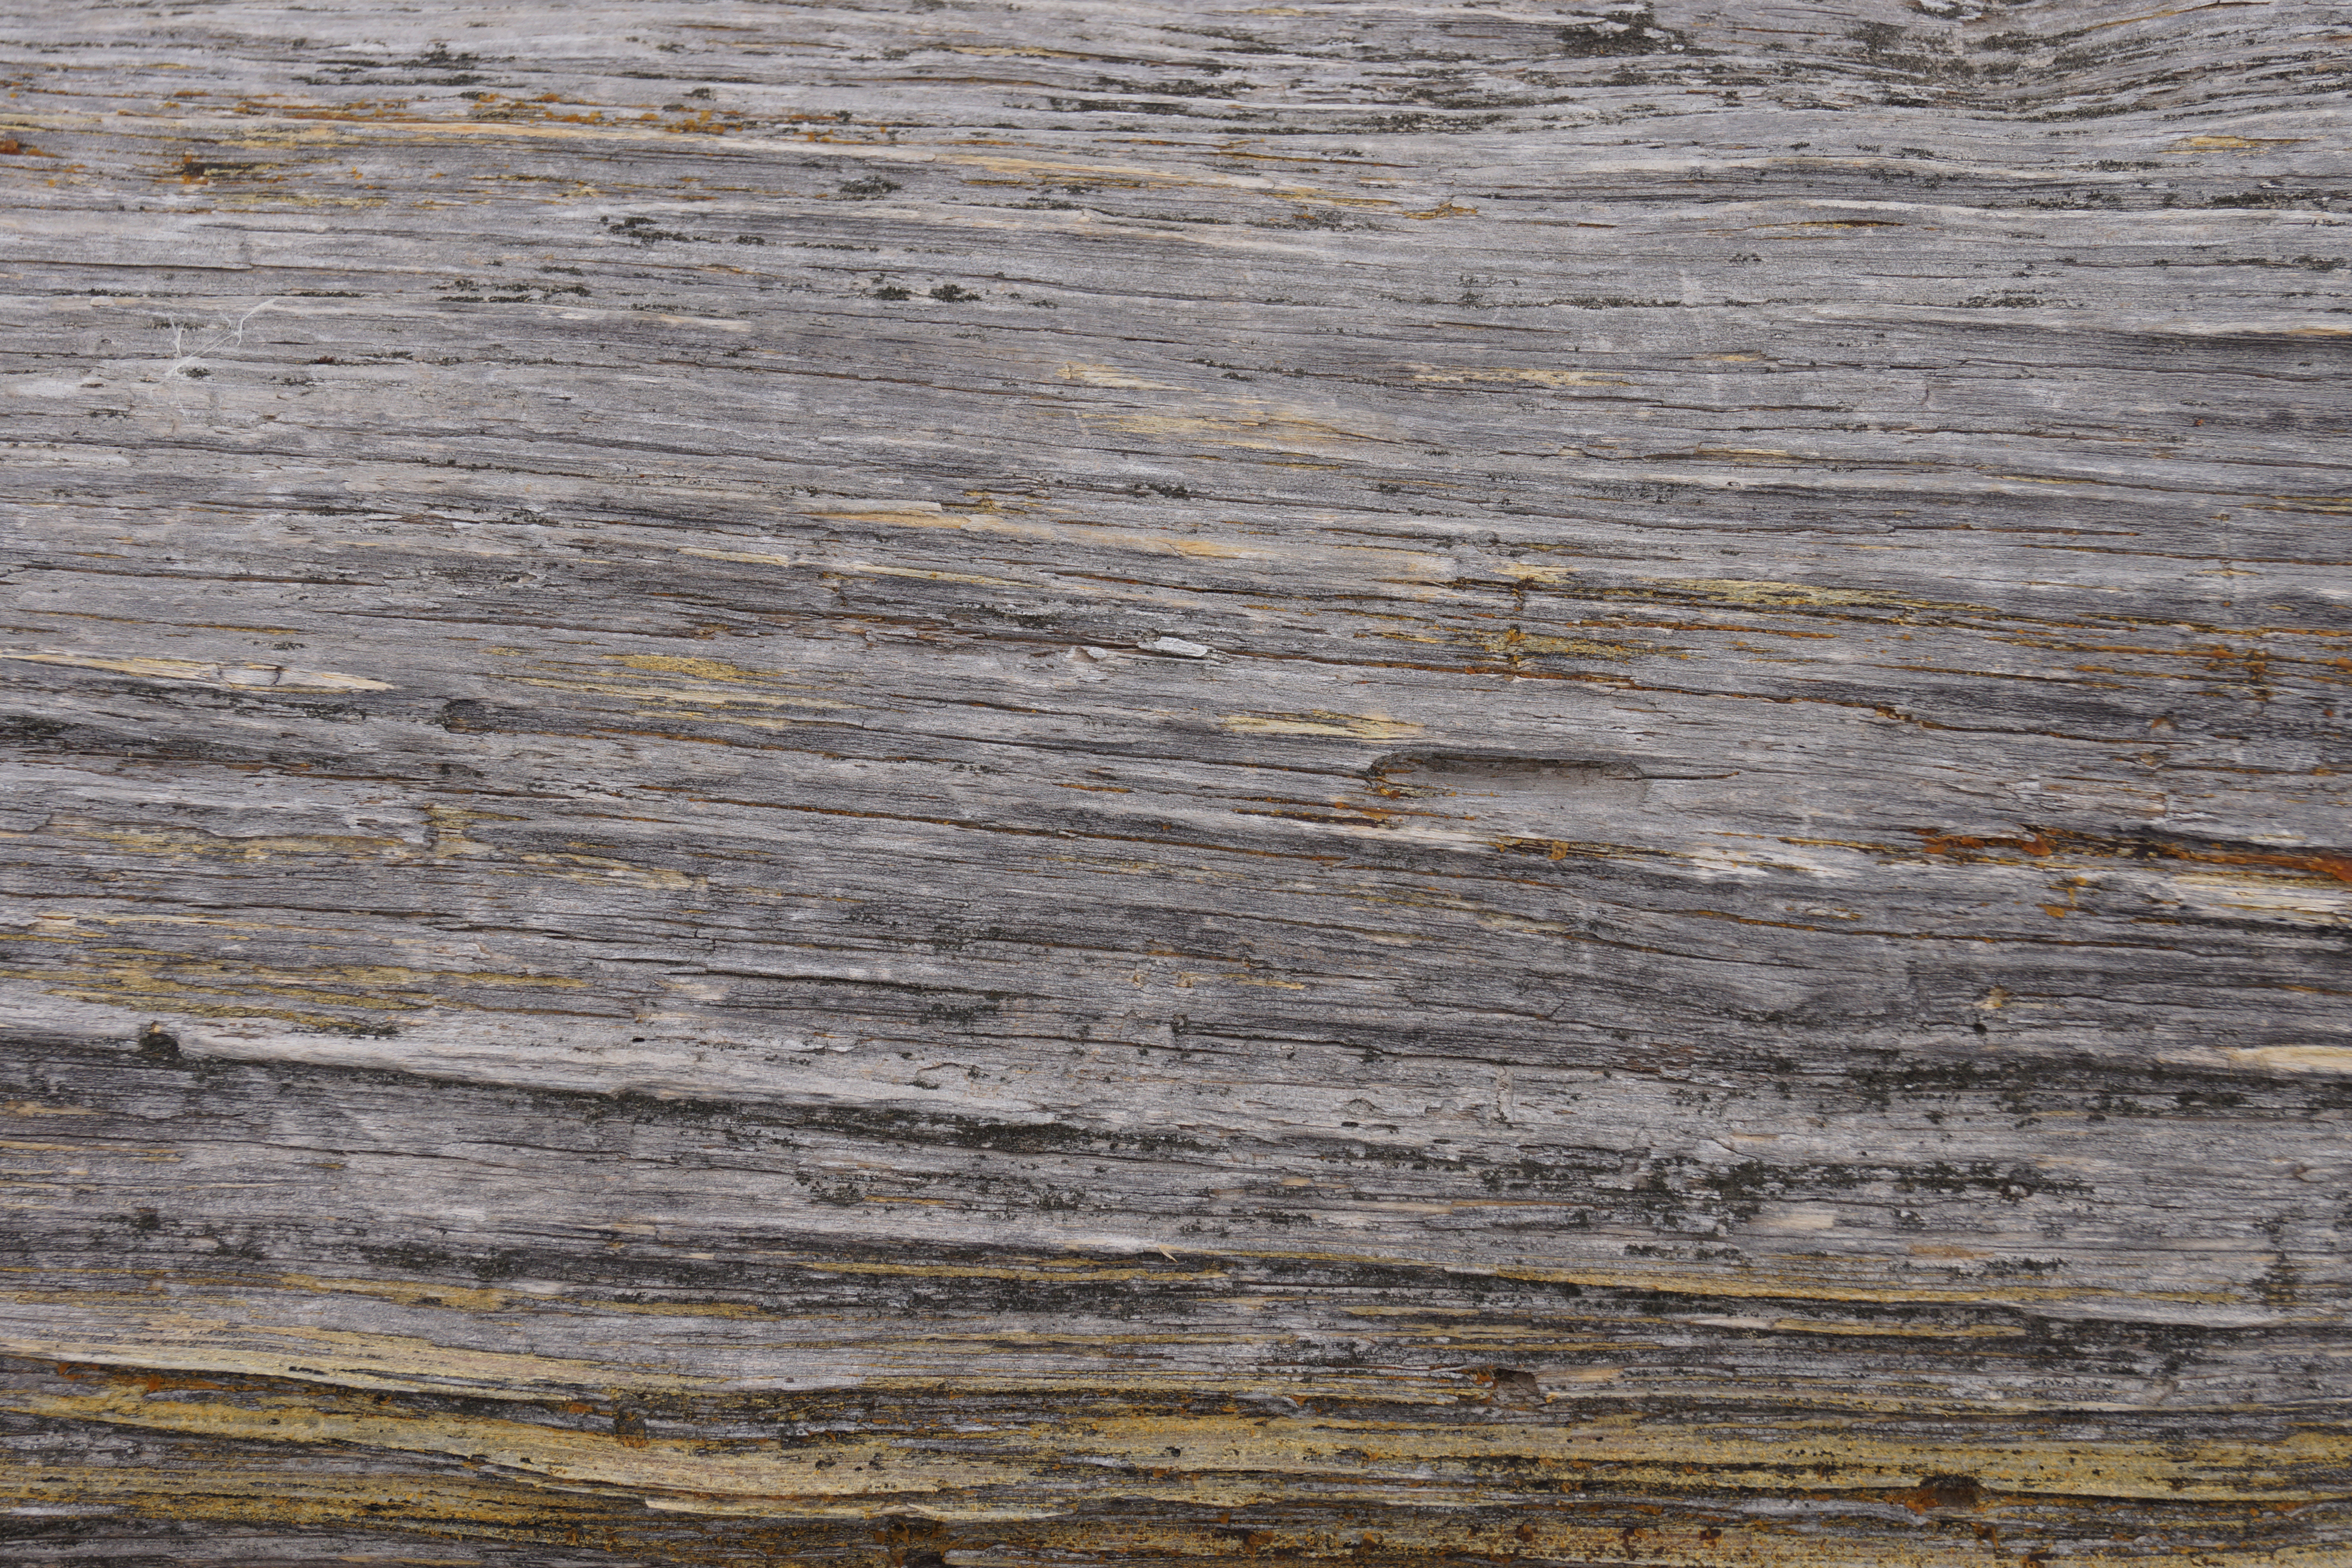 Free High Rez Grunge Texture Download: Grainy Wood Grain - Judah ...